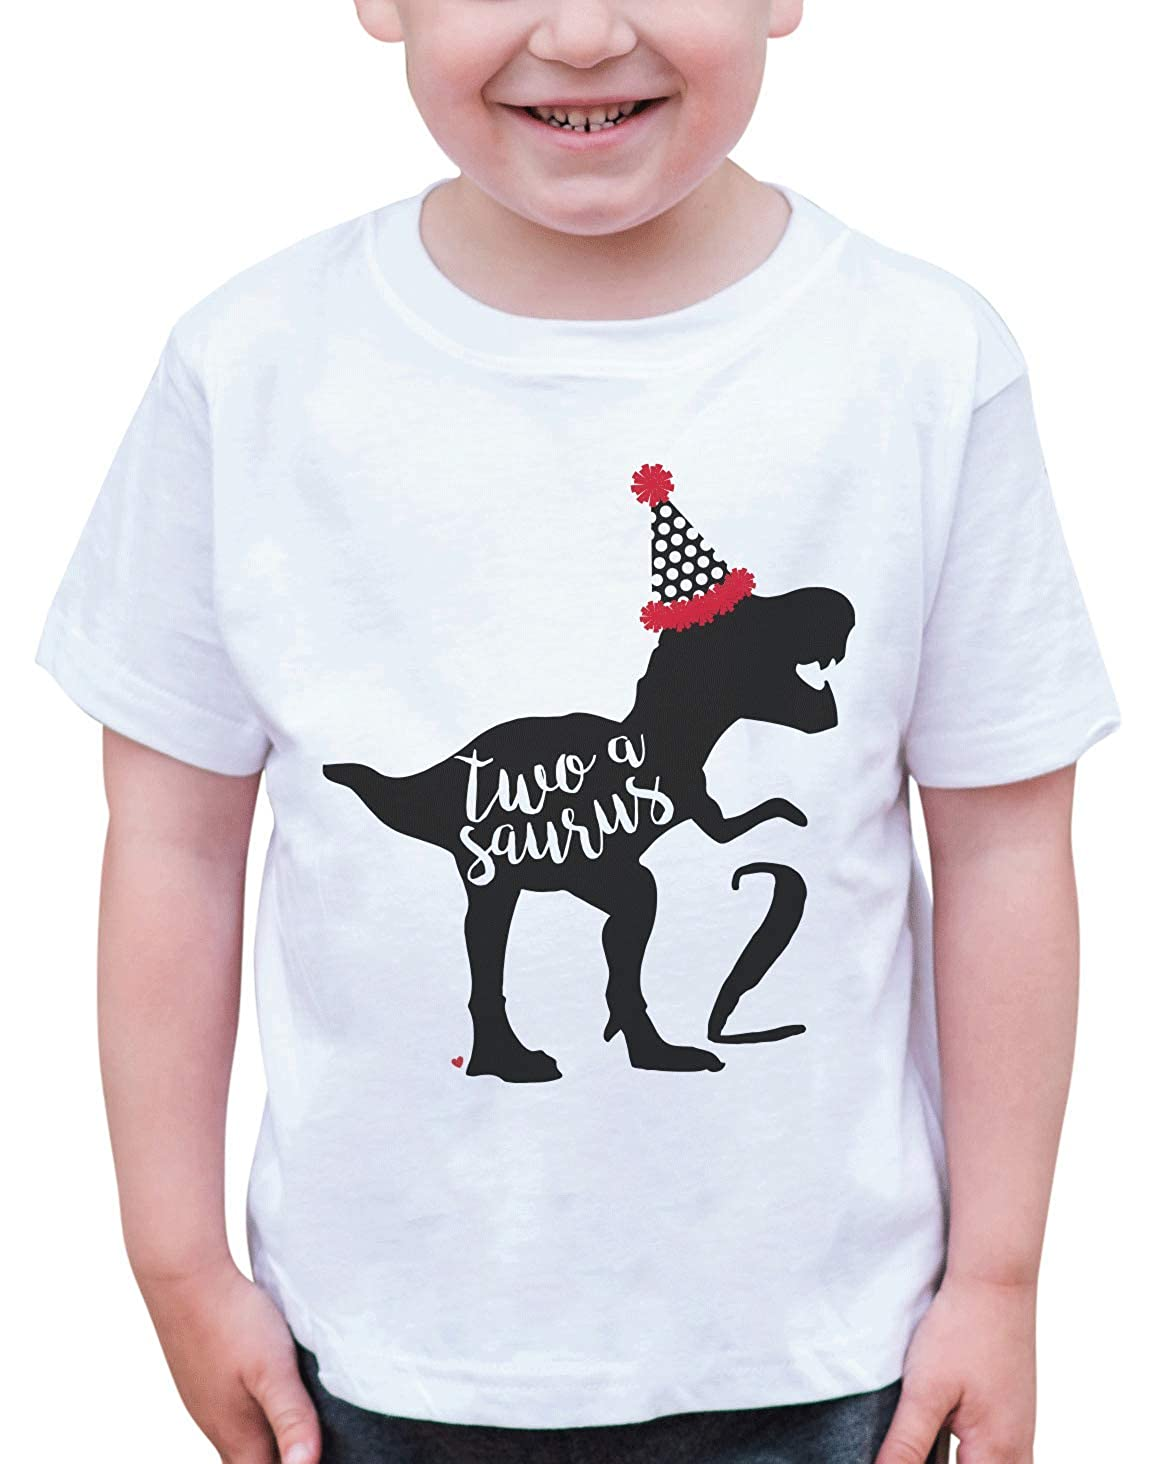 2351a479b Dinosaur t-shirt. Celebrate in style with this adorable dinosaur outfit.  Prints are super soft and professionaly applied to the fabric. You can't  feel ...